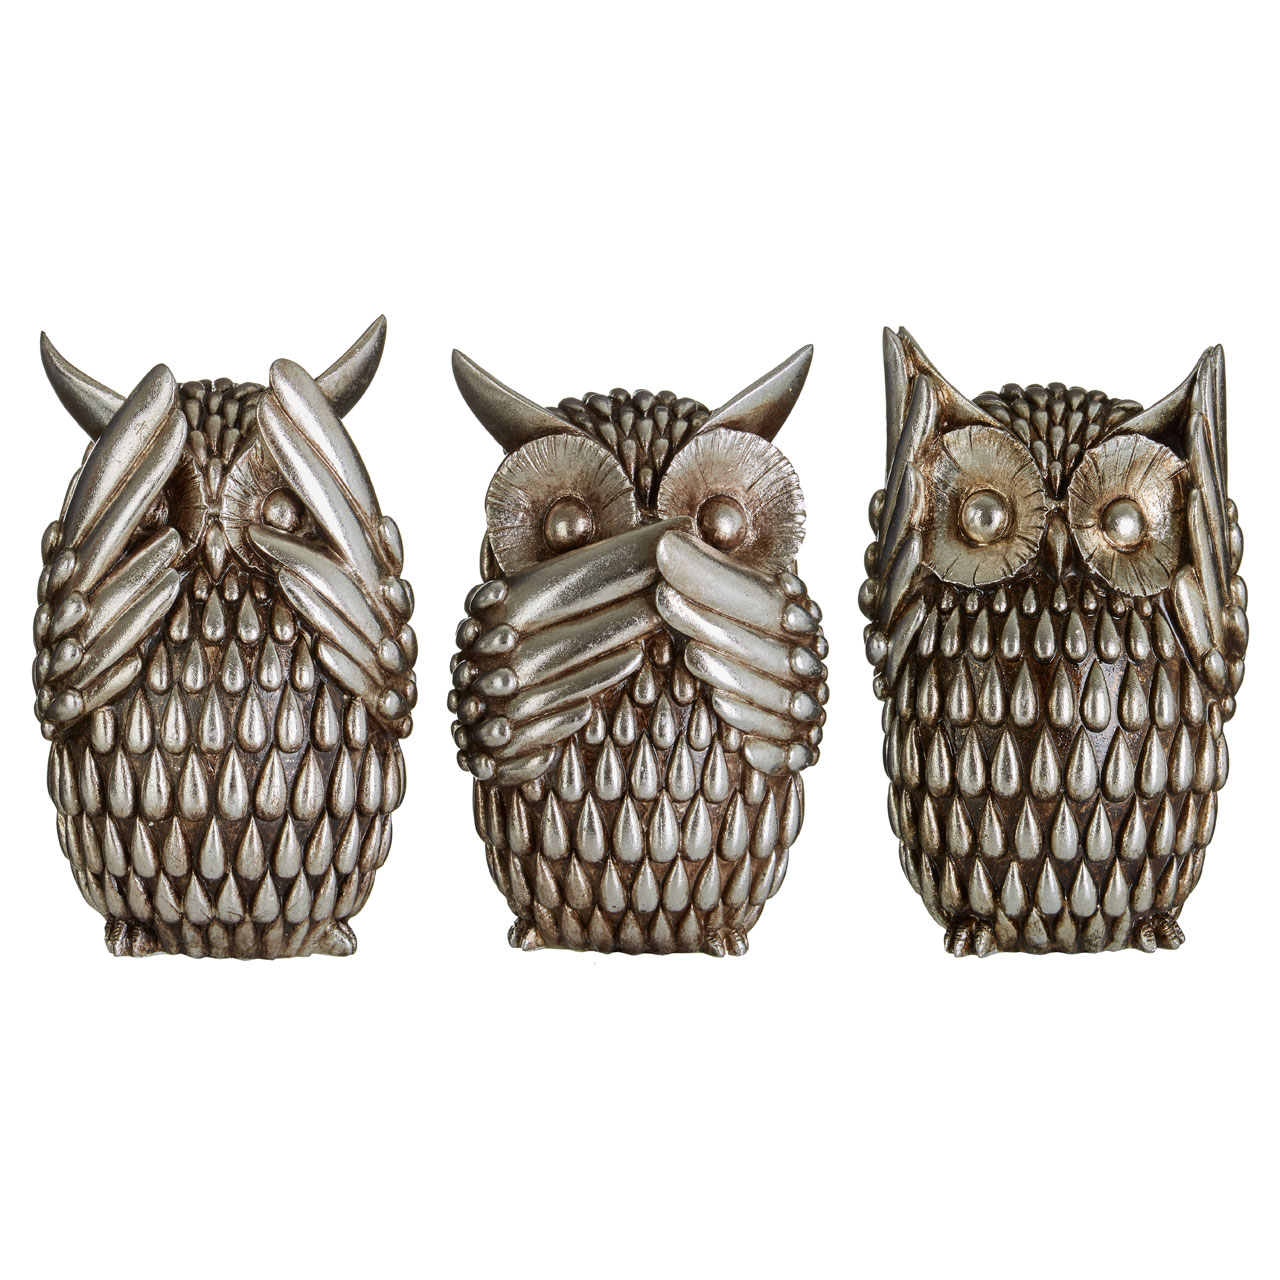 Prime Furnishing Owls - Silver - Set Of 3